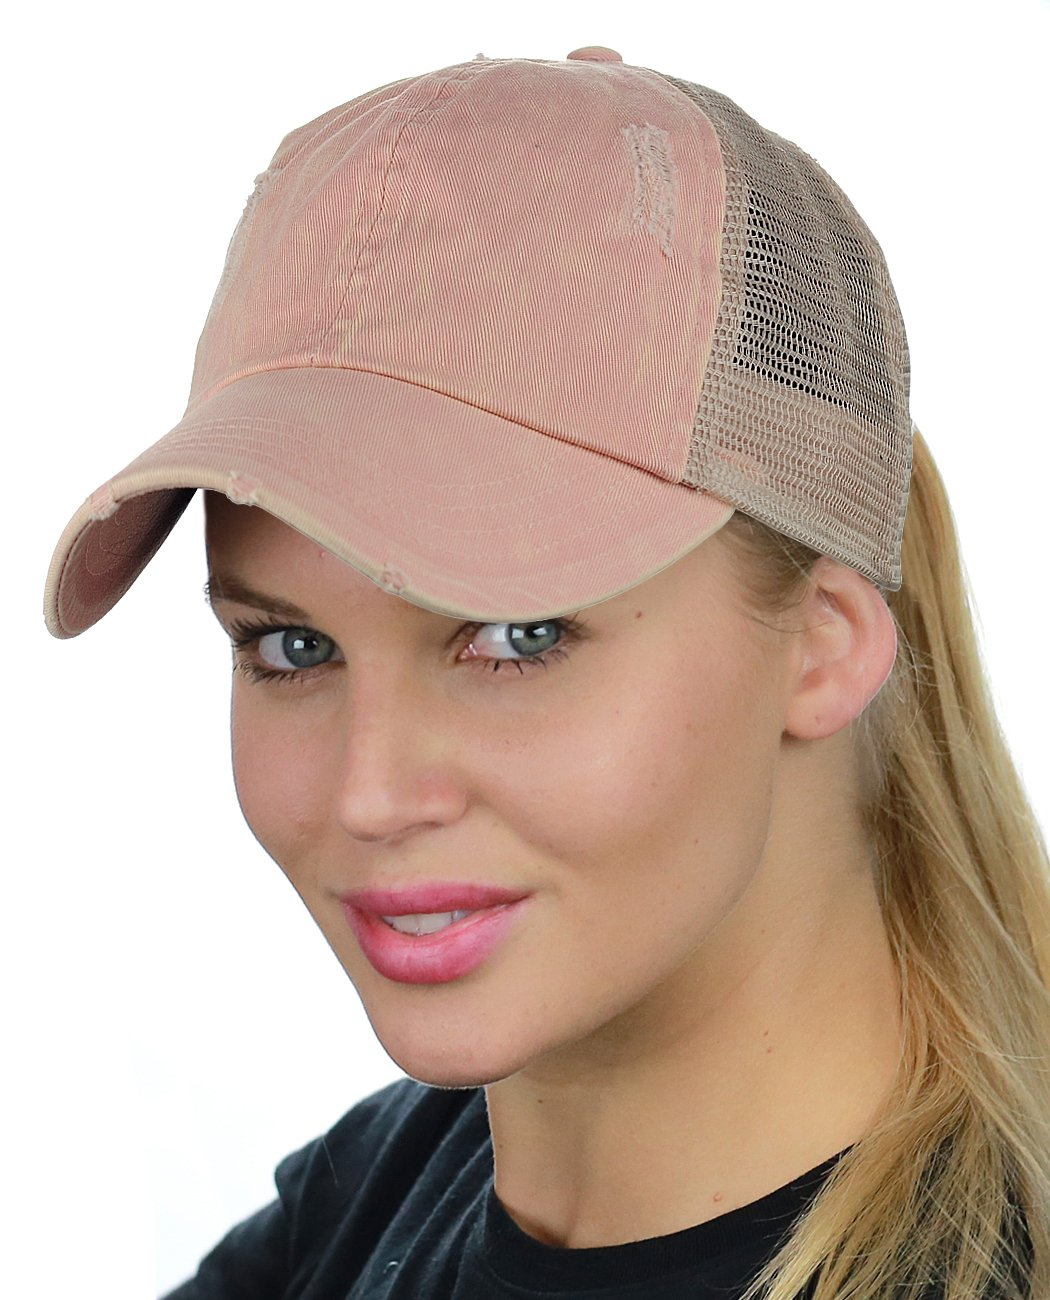 D&Y Ponyflo Ponytail Messy High Bun Distressed Adjustable Trucker Baseball Cap, Dusty Pink by D&Y (Image #2)